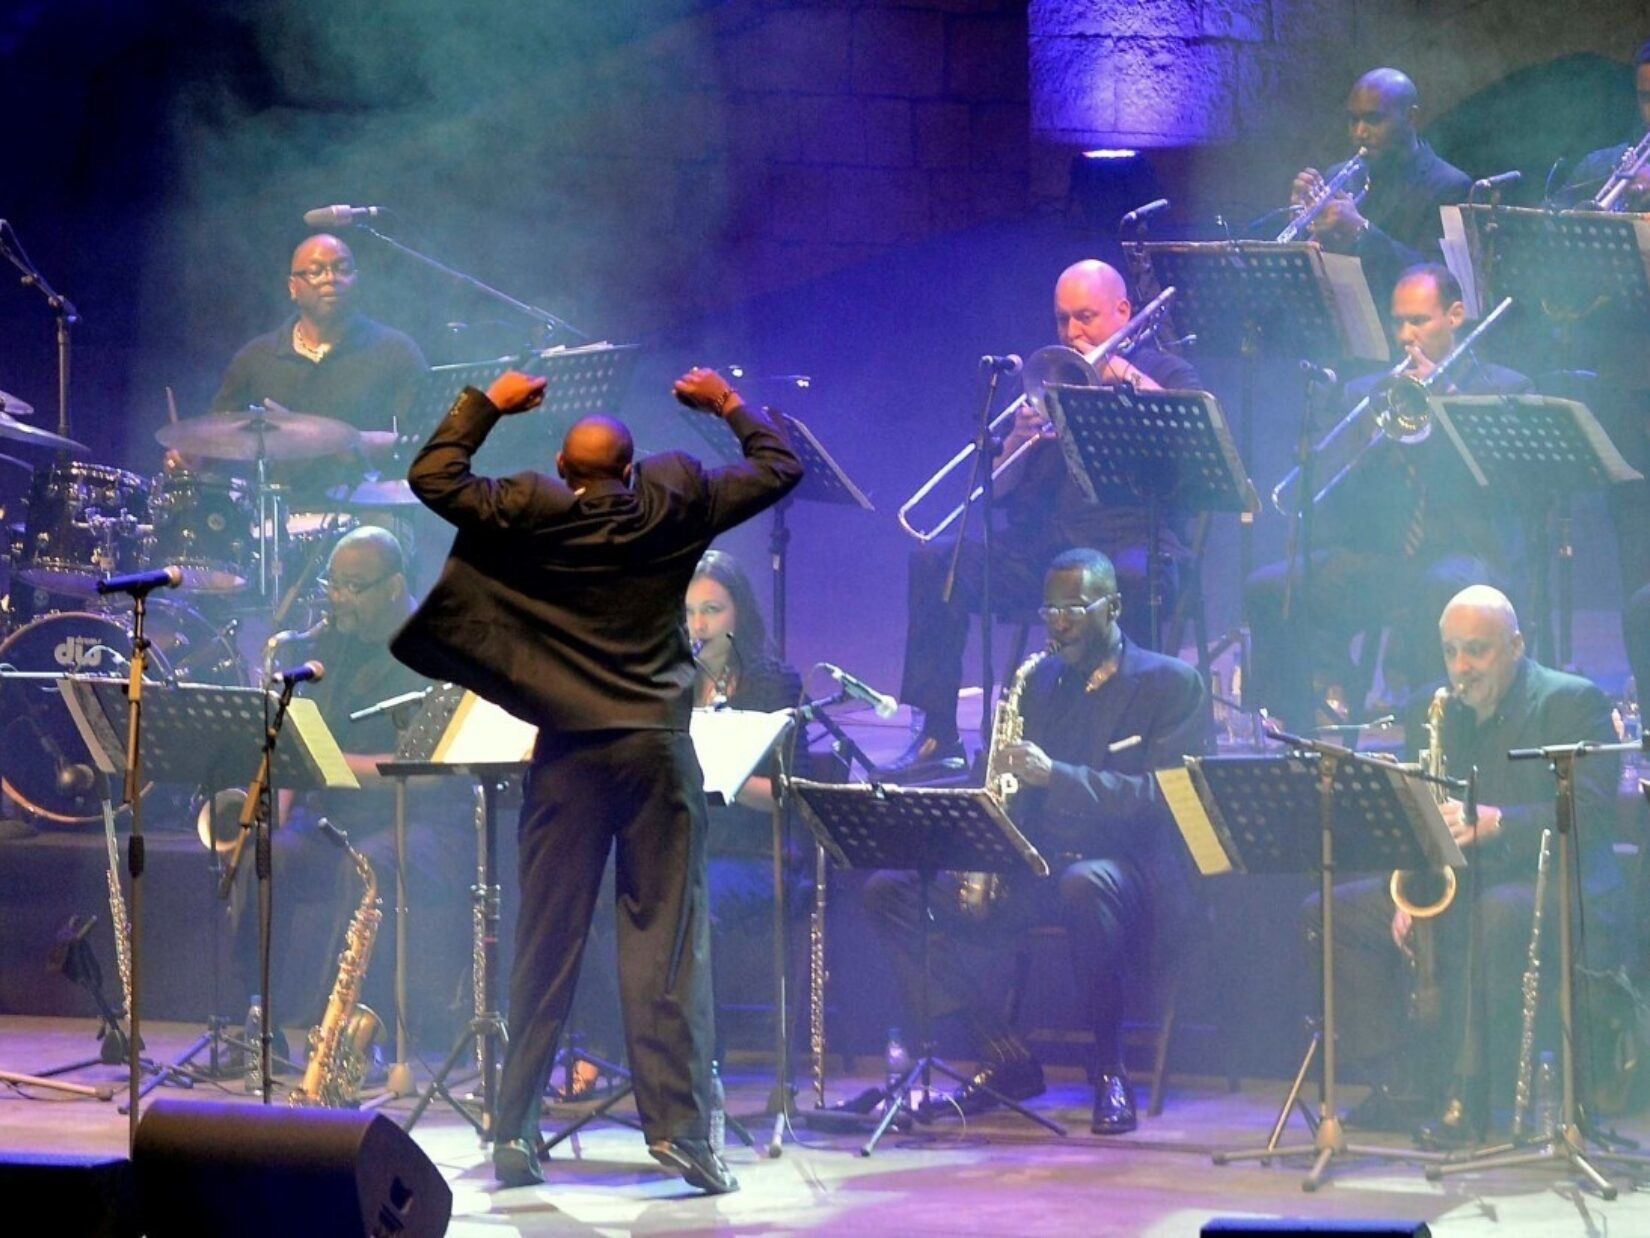 The conductor's arms are over his head while the big band wails.